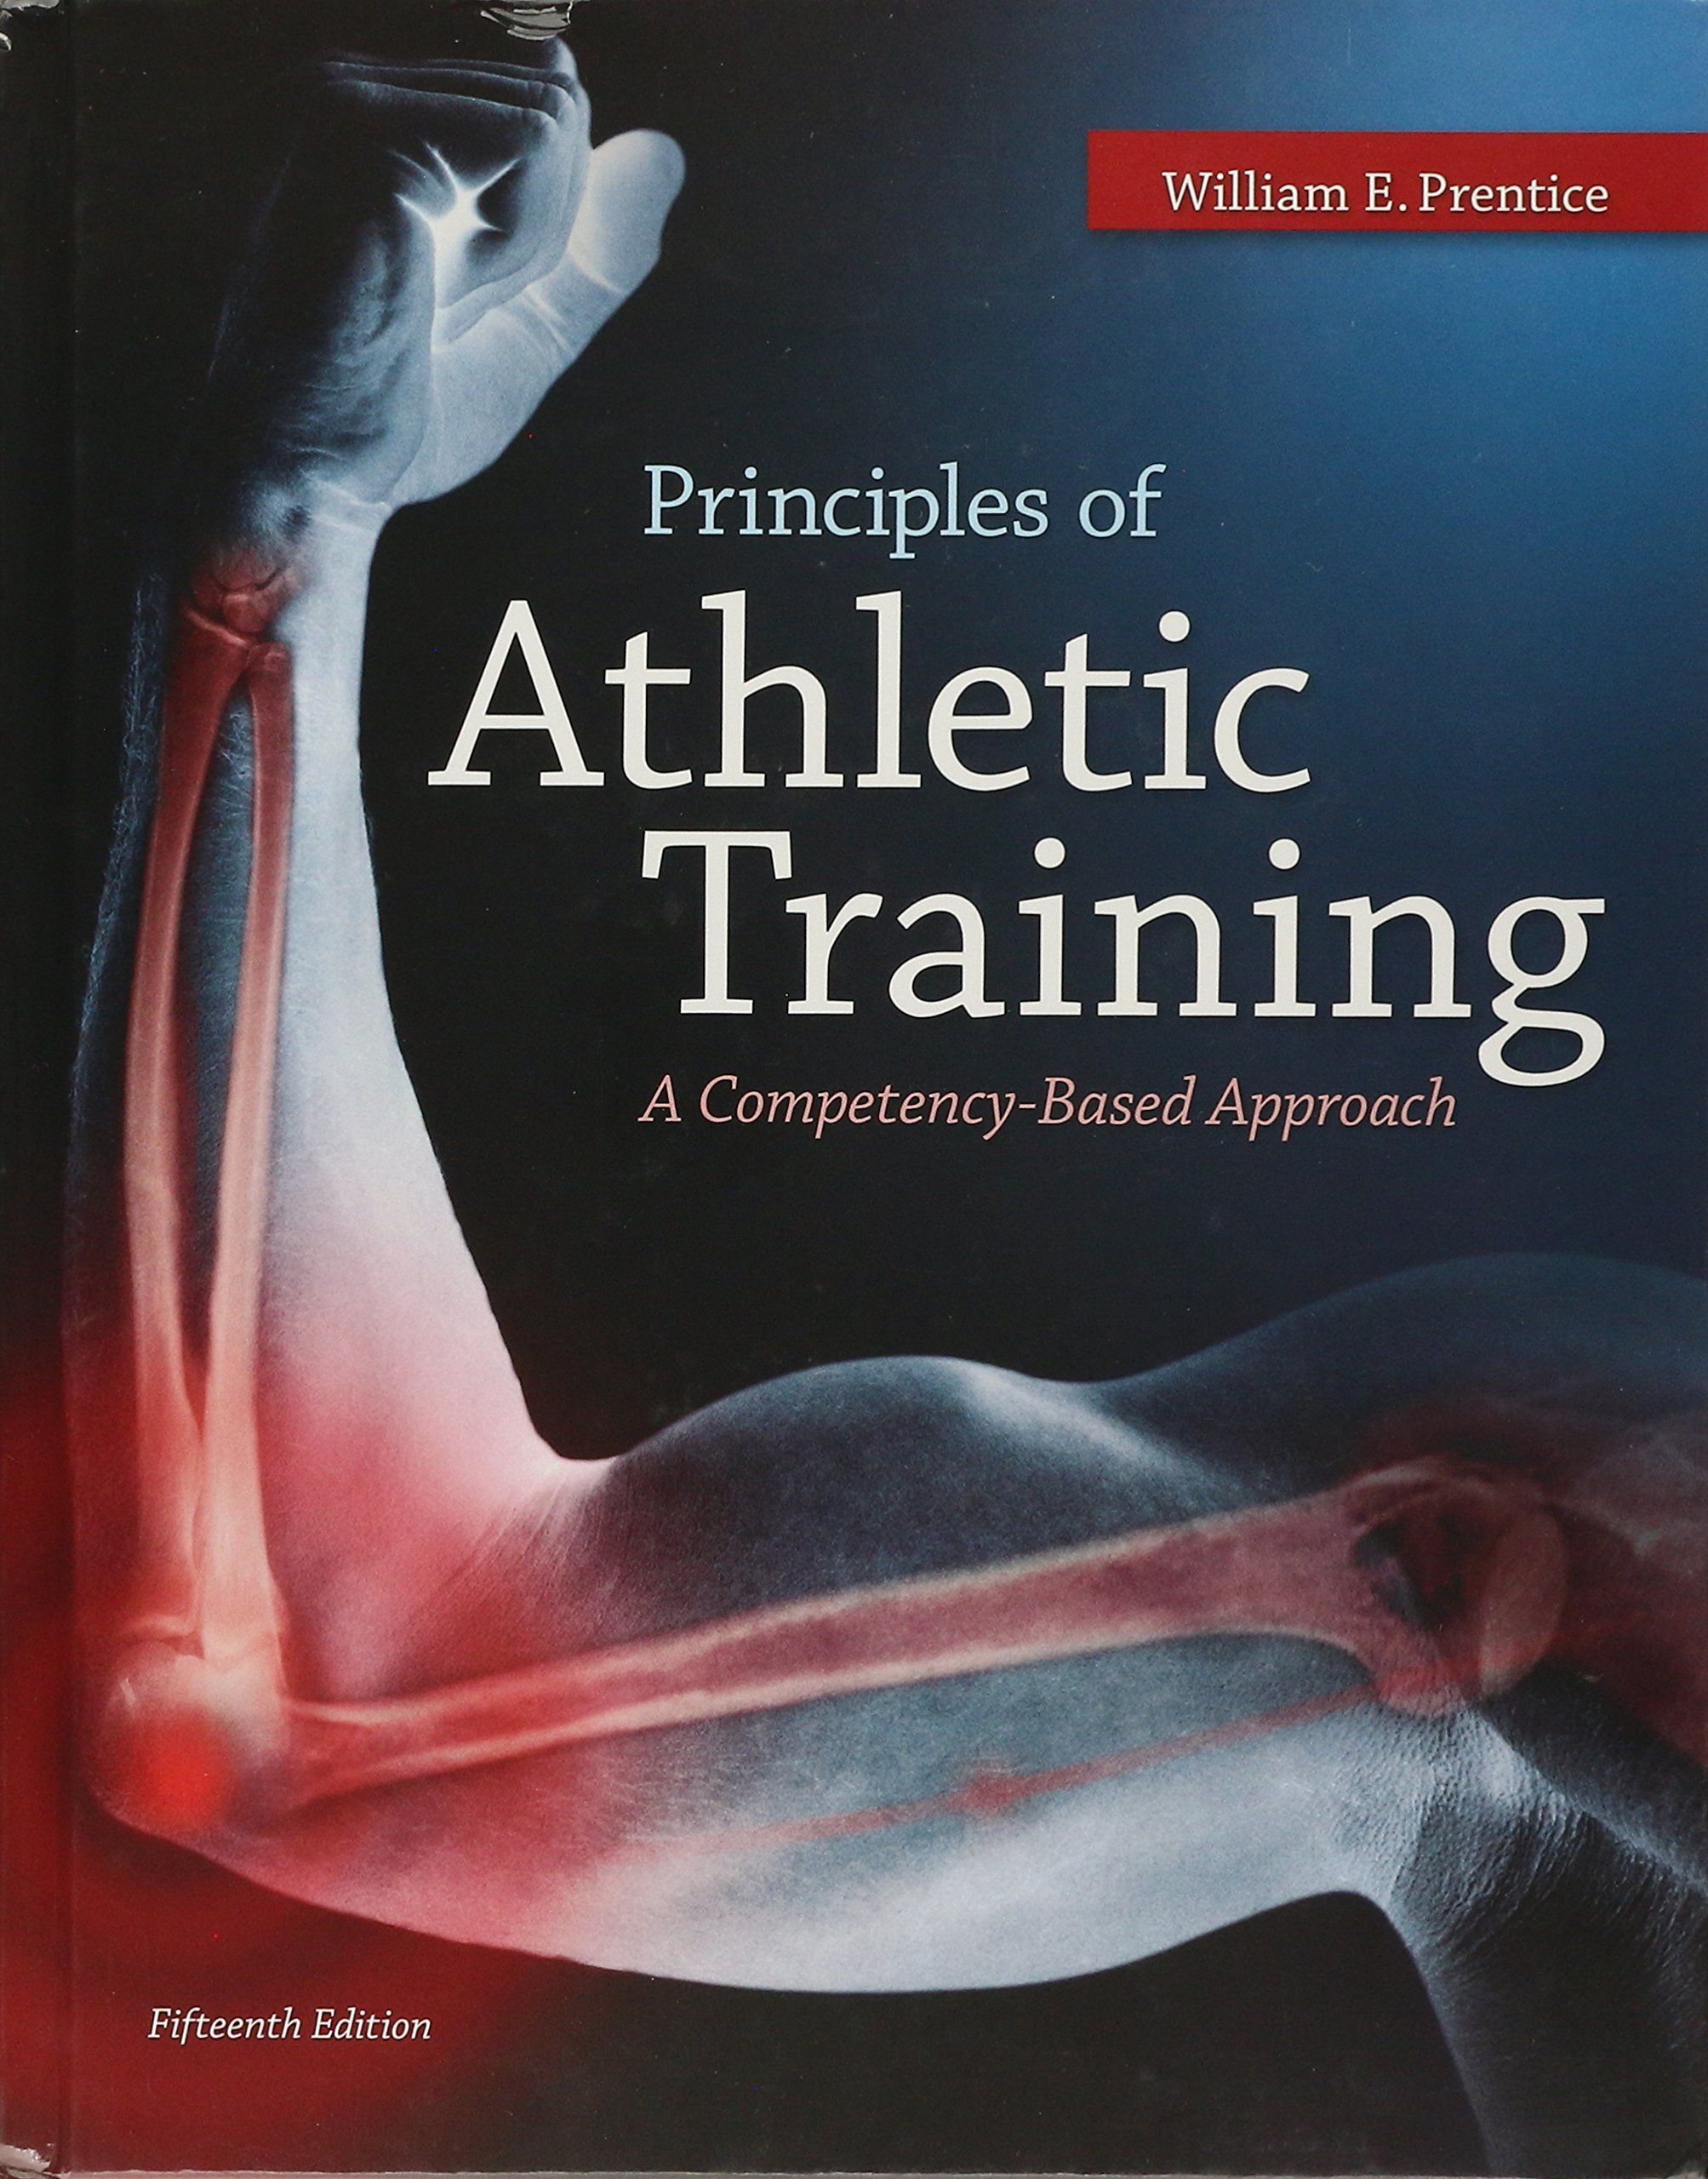 Principles of Athletic Training: A Competency-Based Approach by McGraw-Hill Education